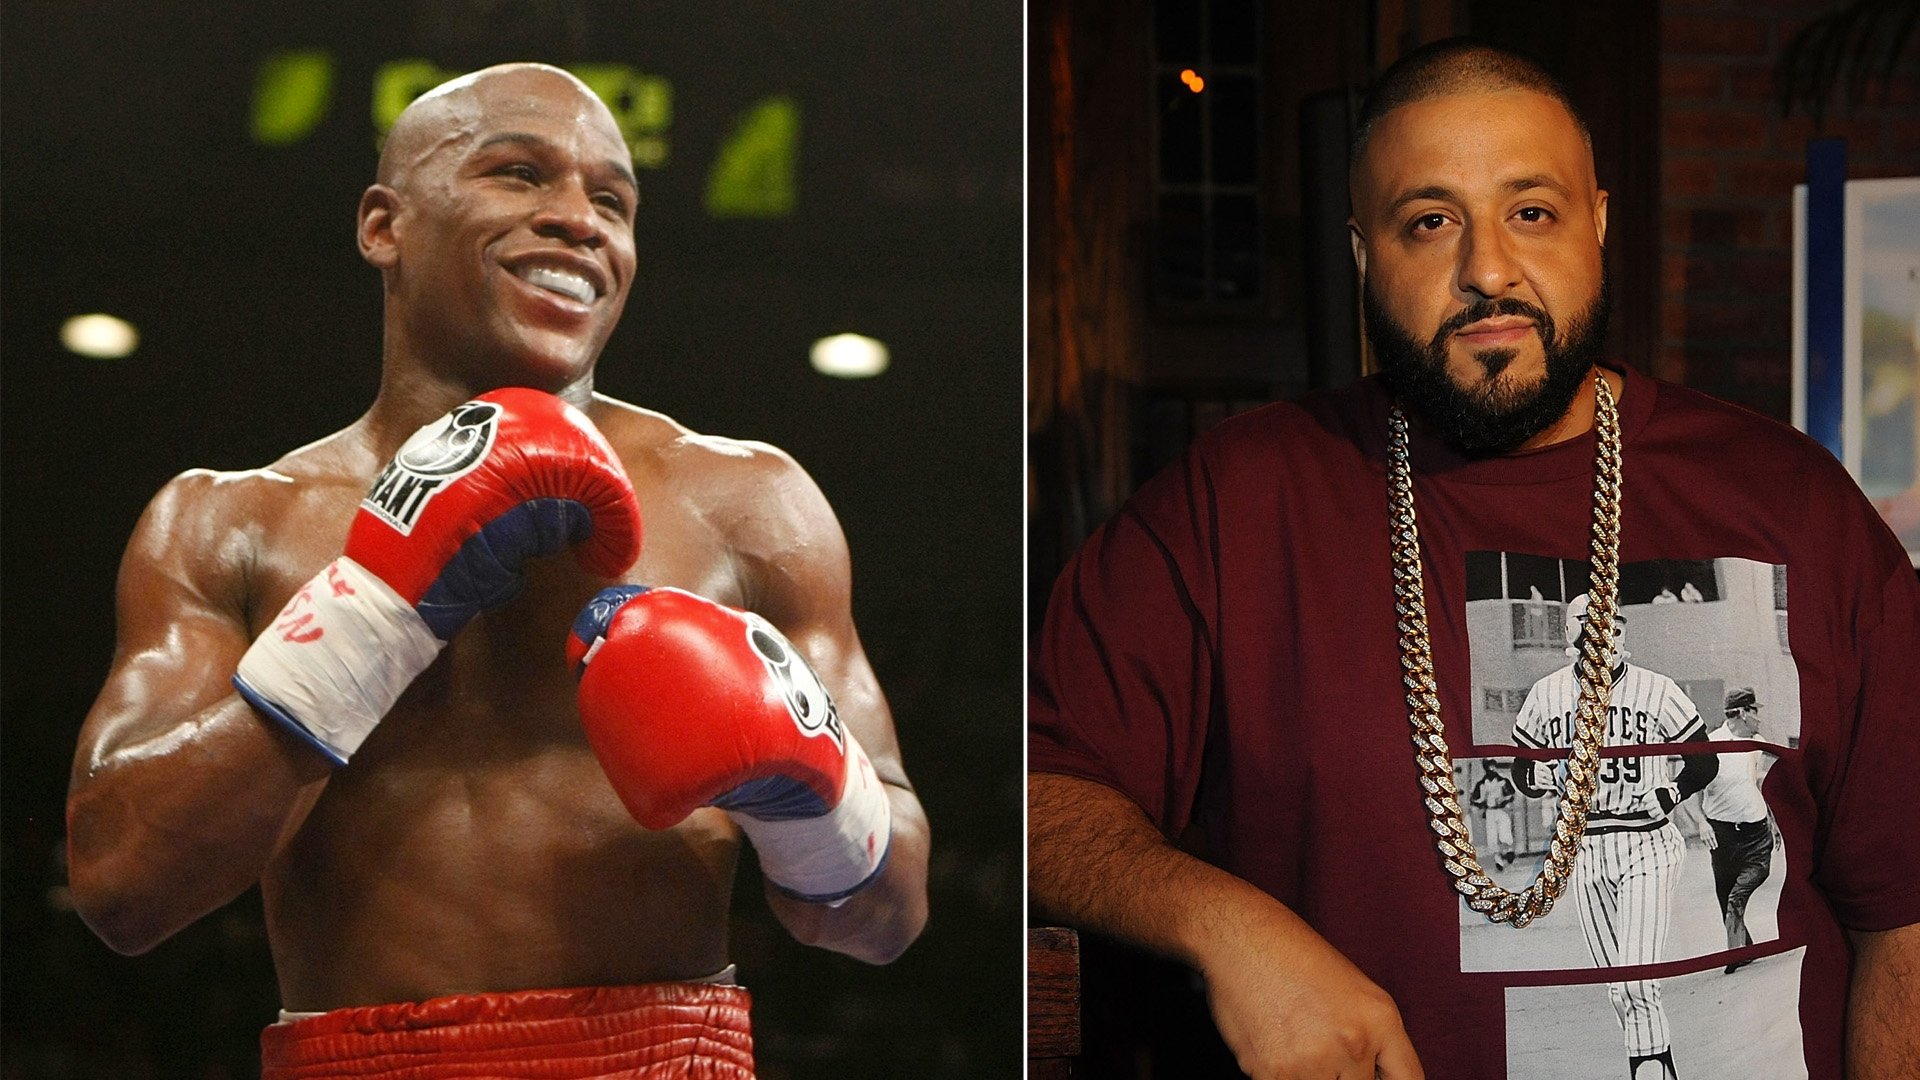 The SEC charged Floyd Mayweather Jr. (left) and DJ Khaled with cryptocurrency fraud. (Credit: Ethan Miller/Getty Images, Brad Barket/Getty Images for UrbanDaddy)